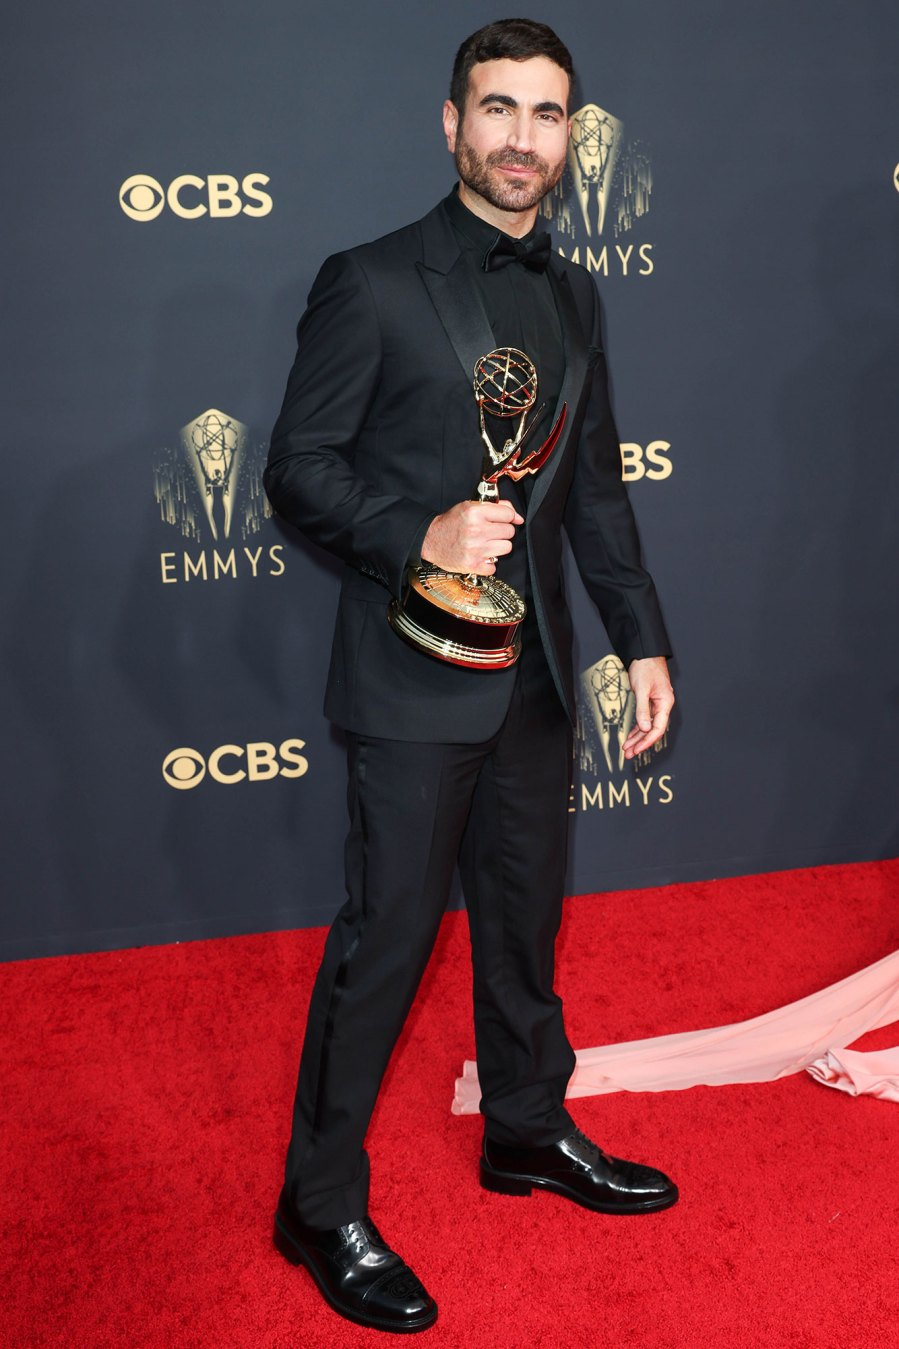 Emmy Awards 2021: 'Ted Lasso' Stars Step Out in Style: Jason Sudeikis and More